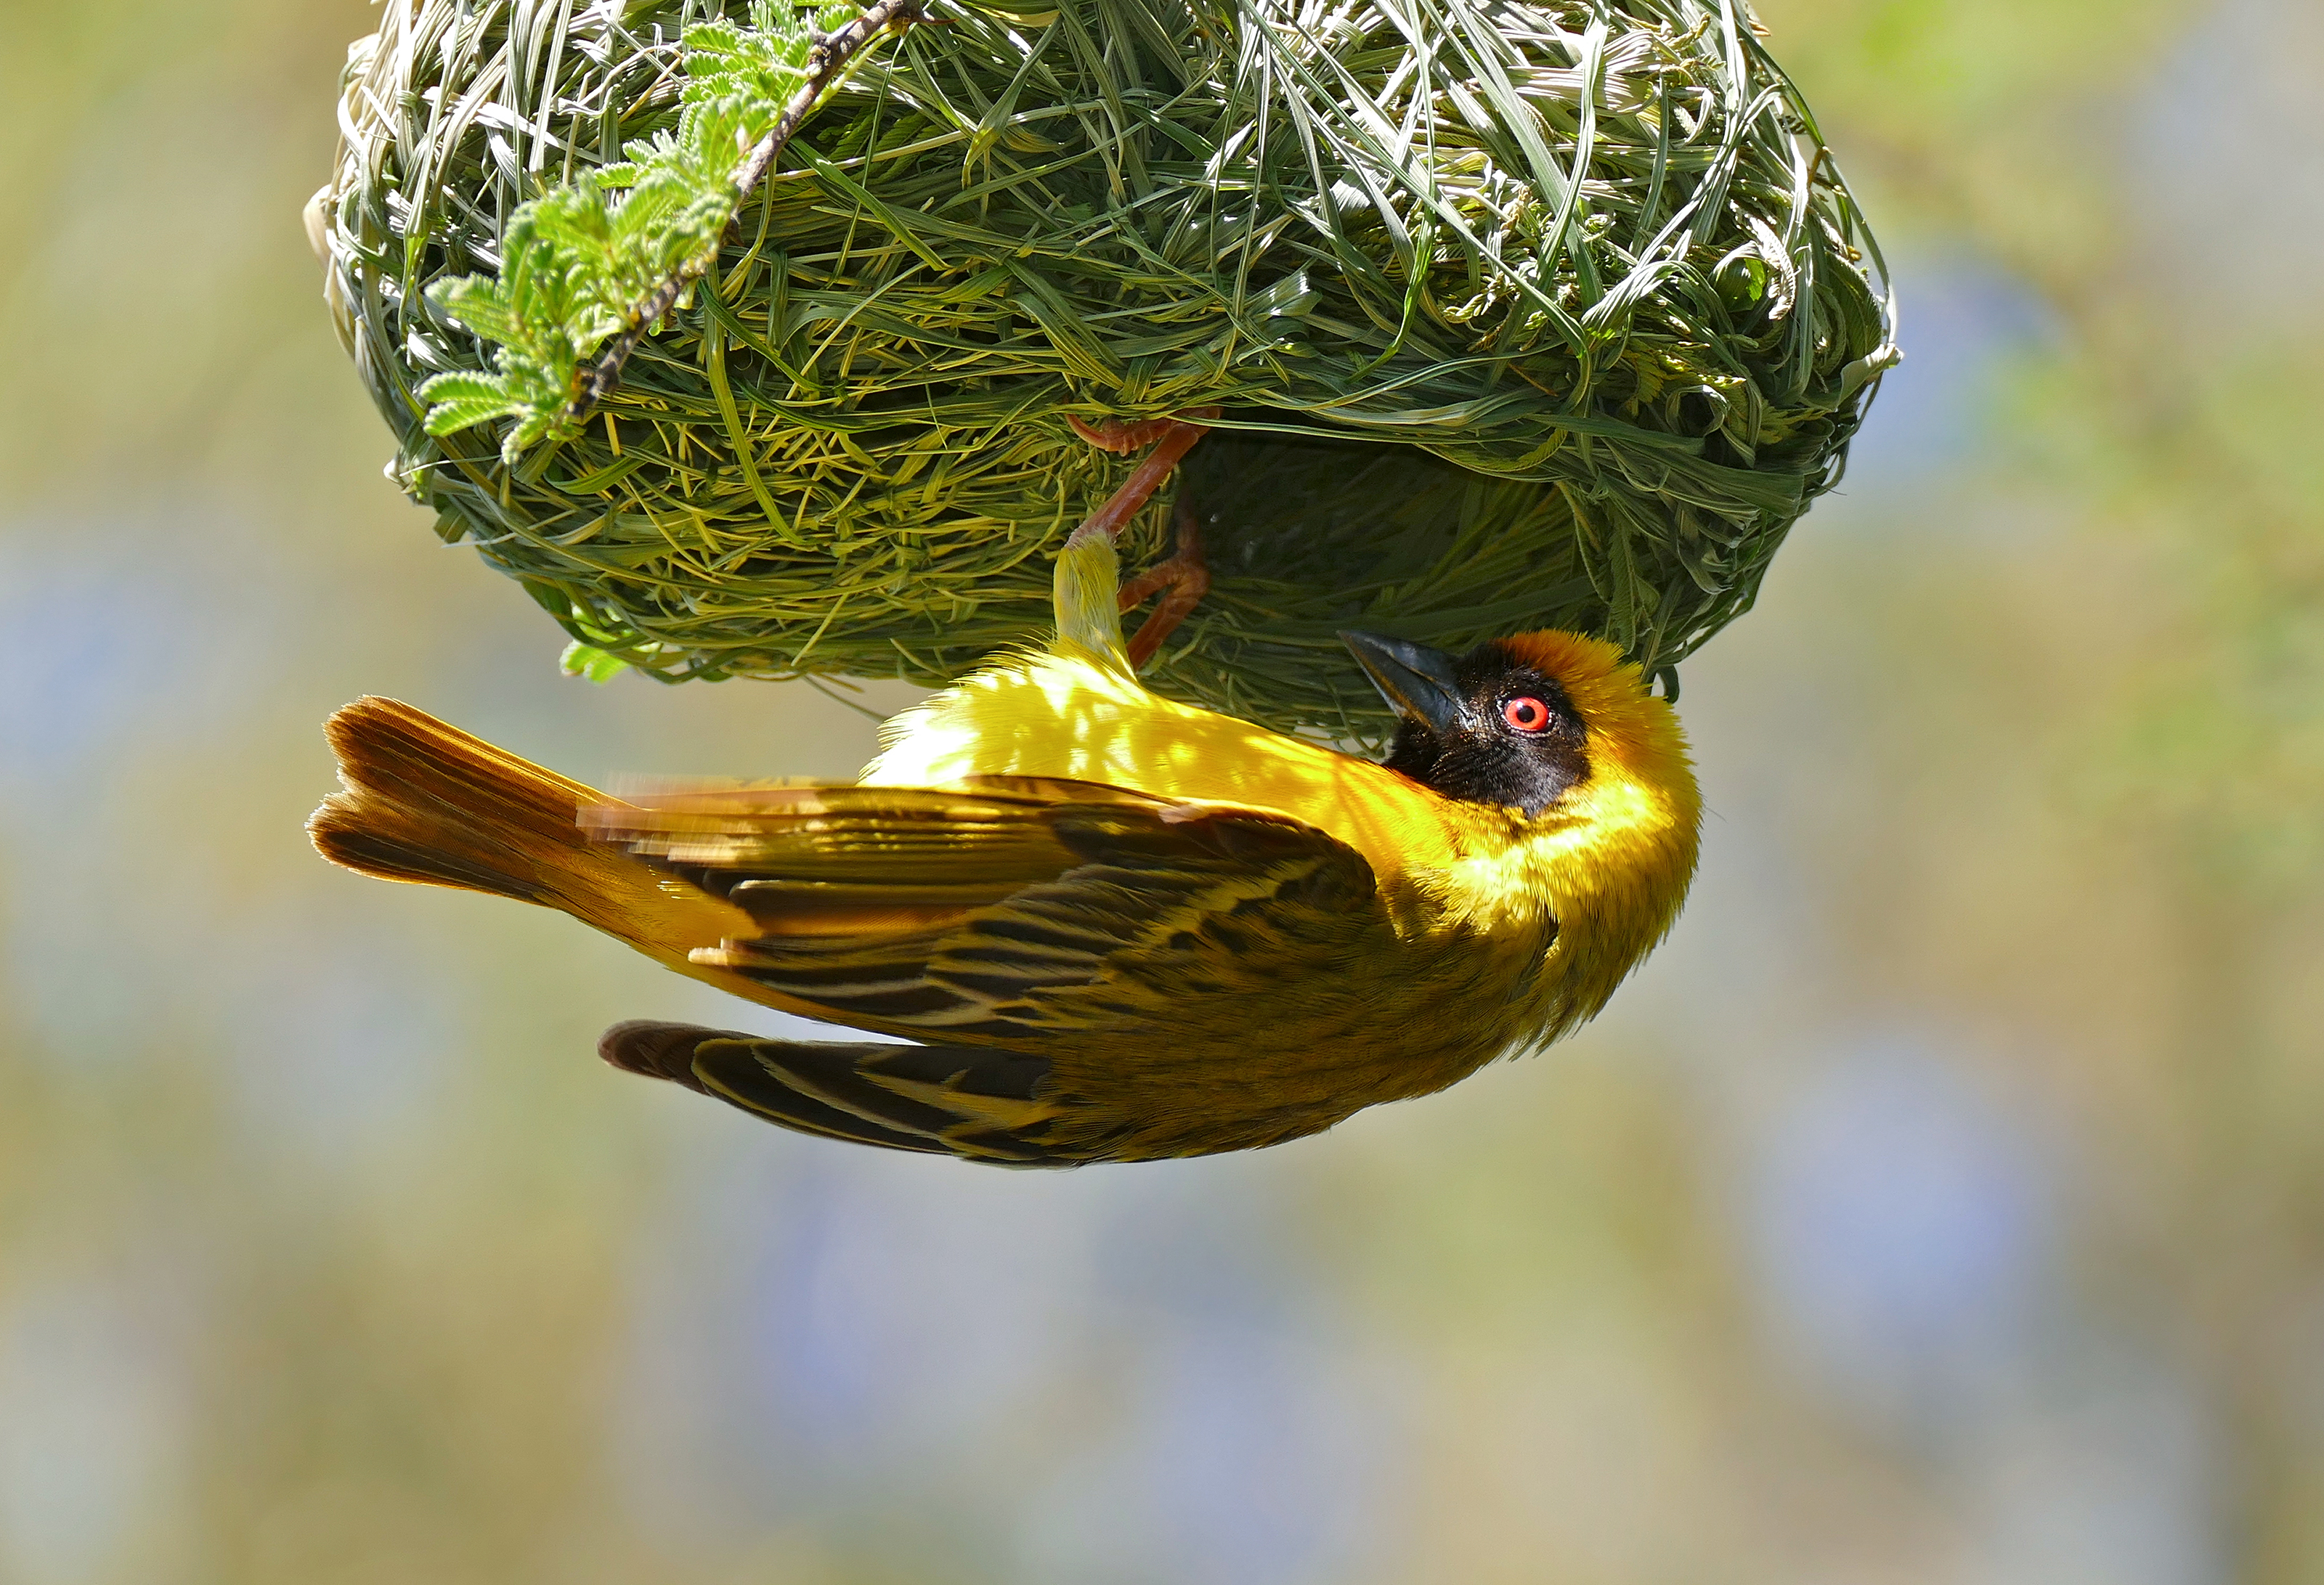 Southern Masked Weavers build nests that have specially sized entrances to ward off parasitic birds. Bernard Dupont